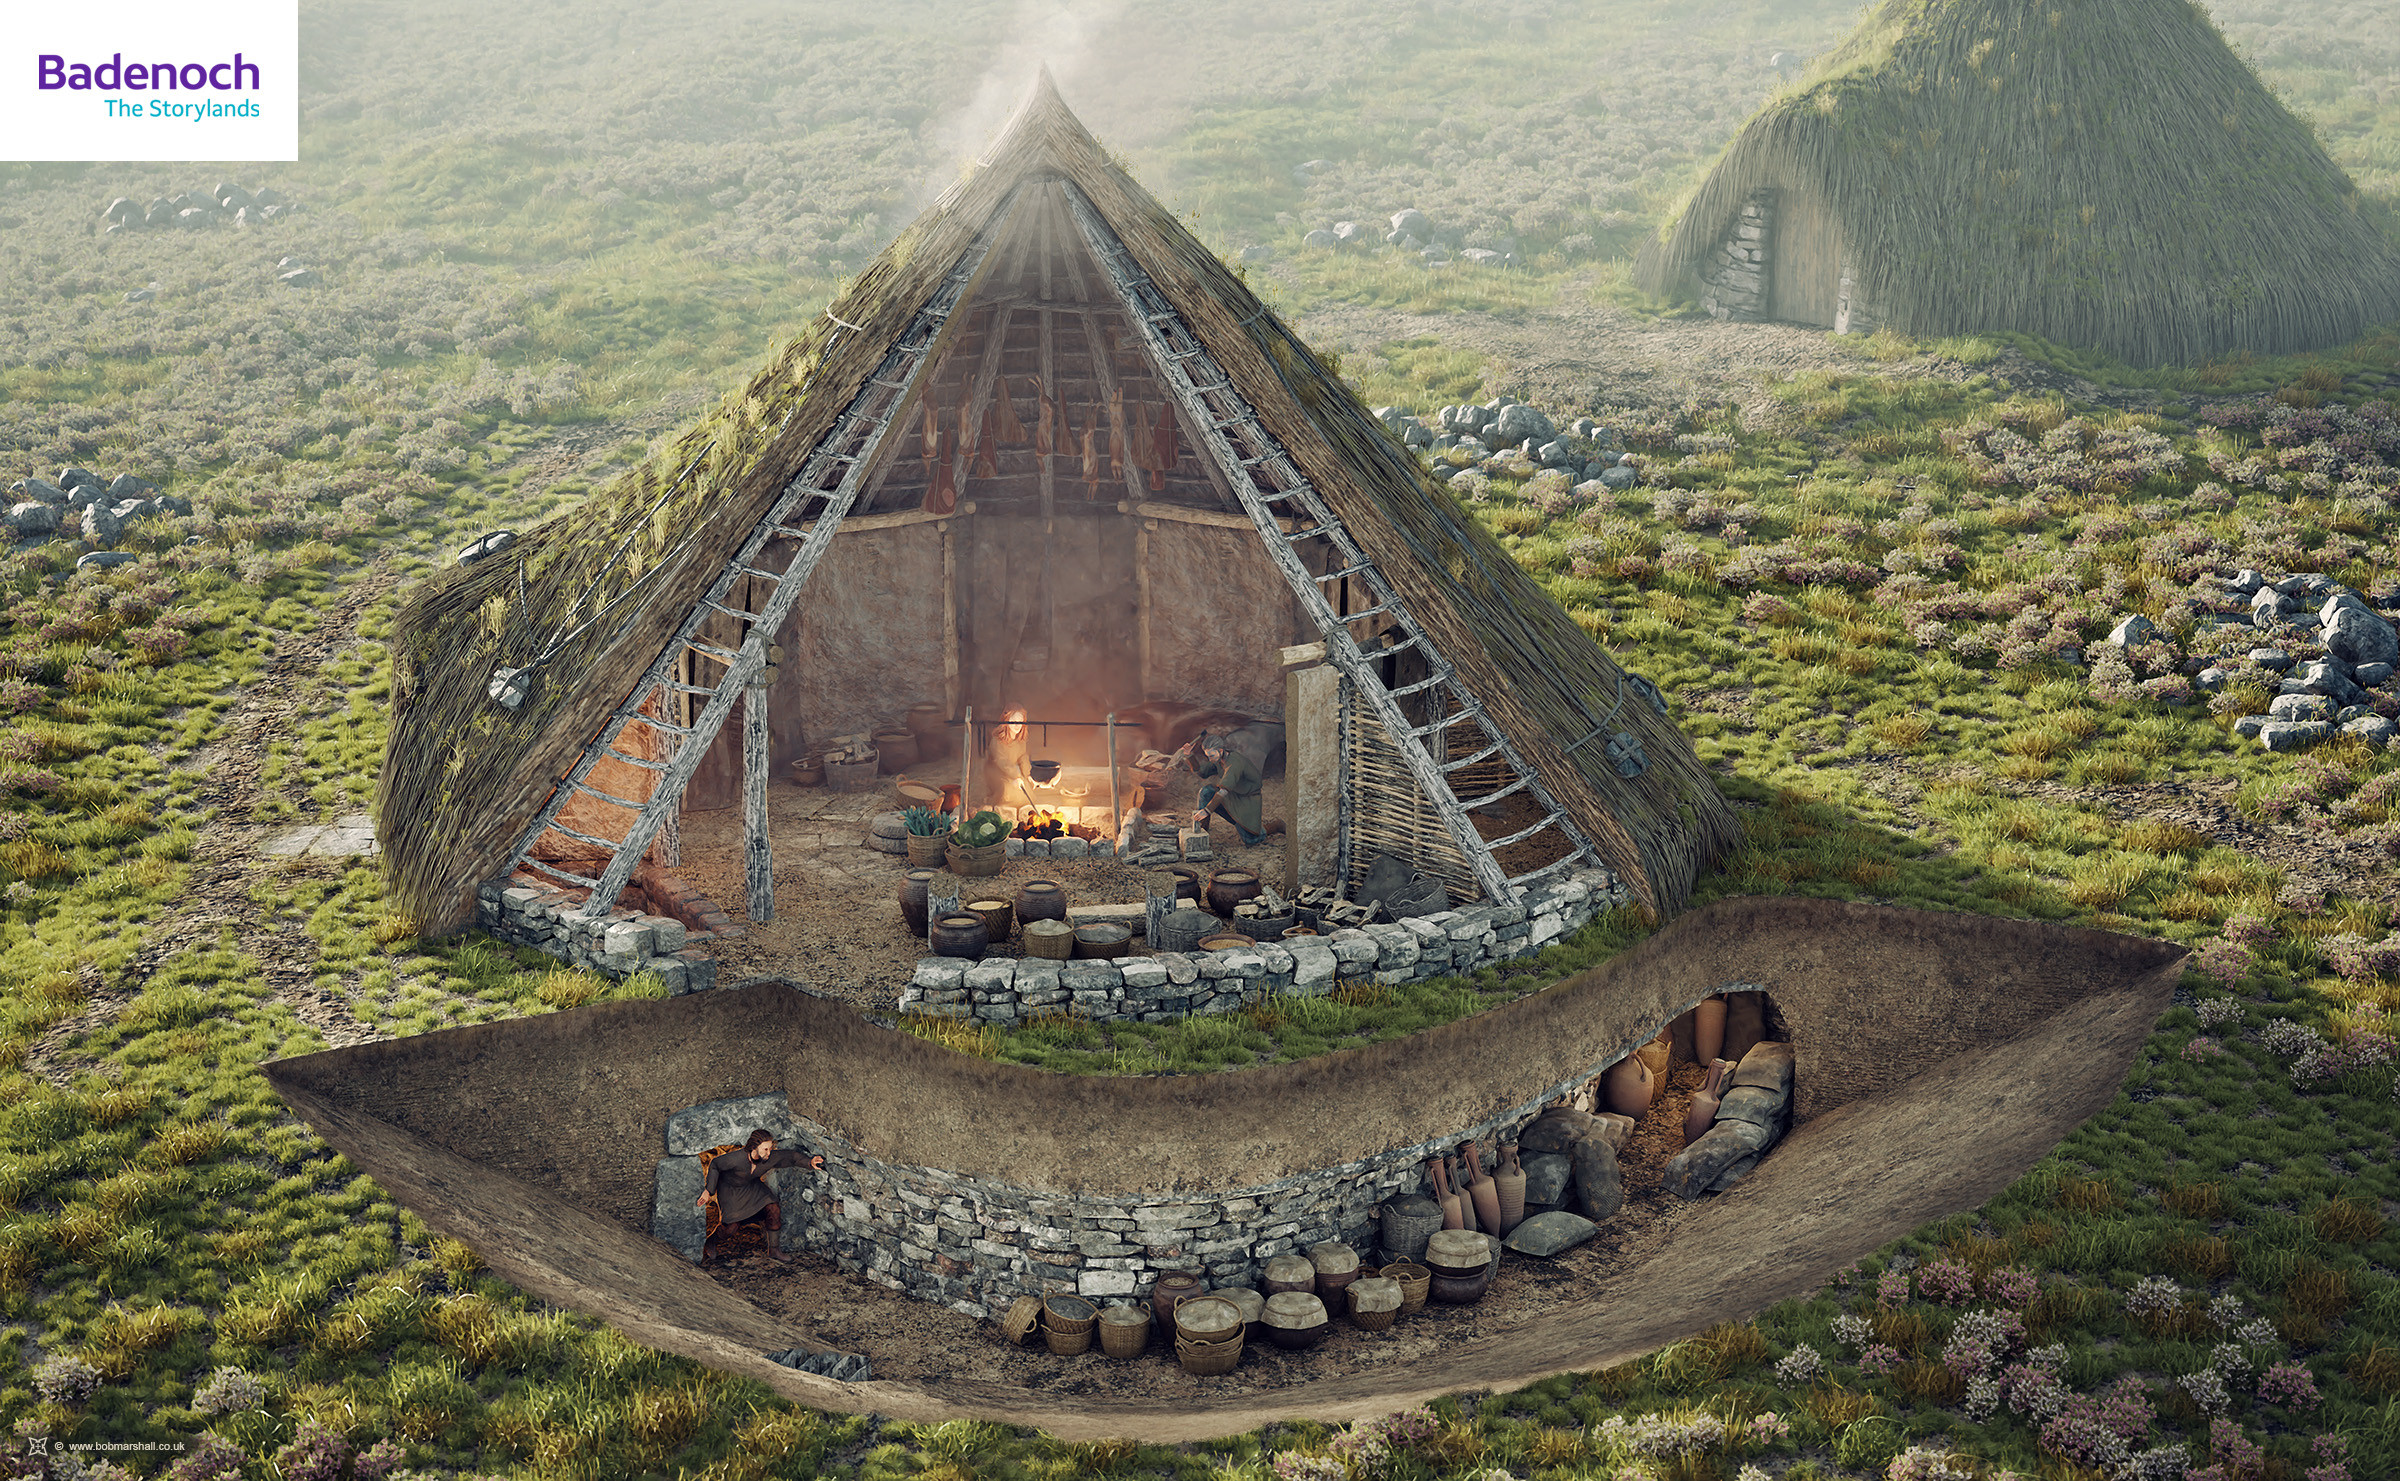 A roundhouse reconstruction showing its hypothetical relationship to a souterrain or underground chamber. Late Iron Age, Highland Scotland.